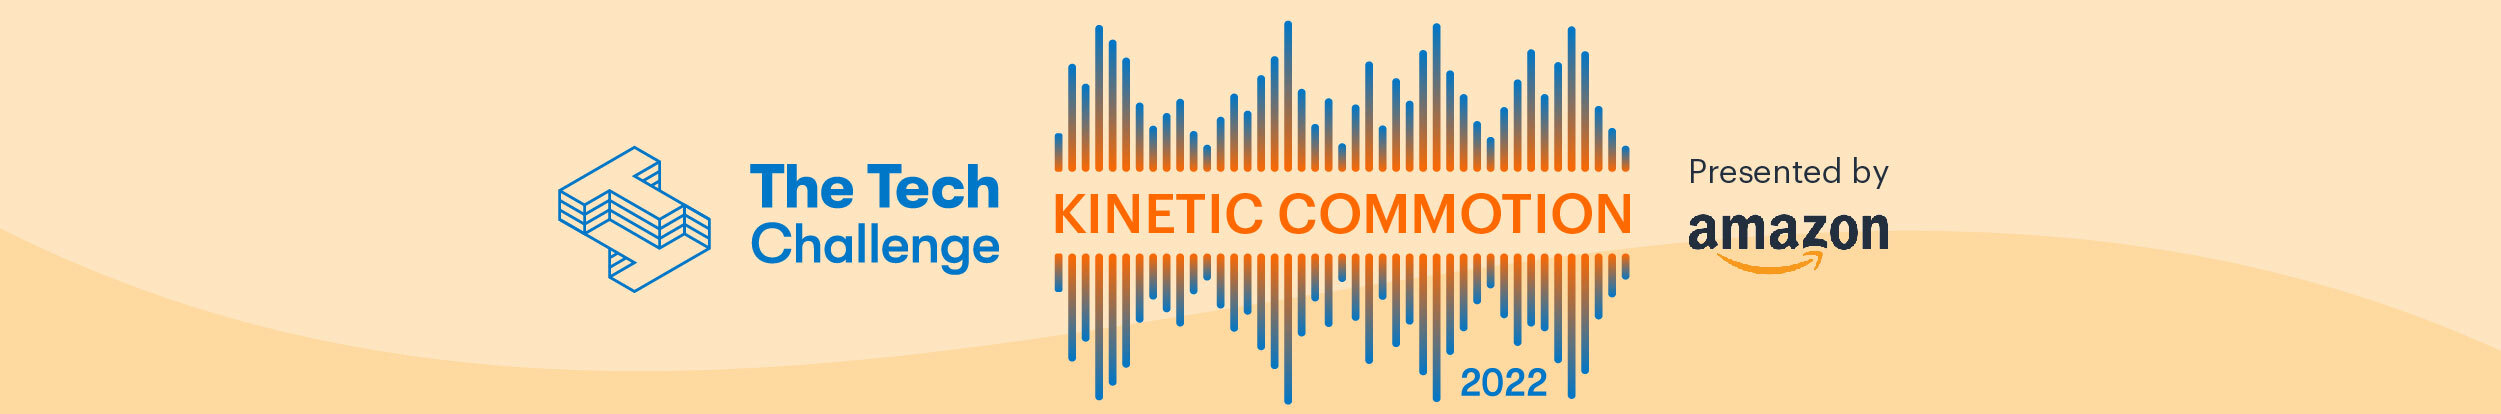 The Tech Challenge 2022 Kinetic Commotion